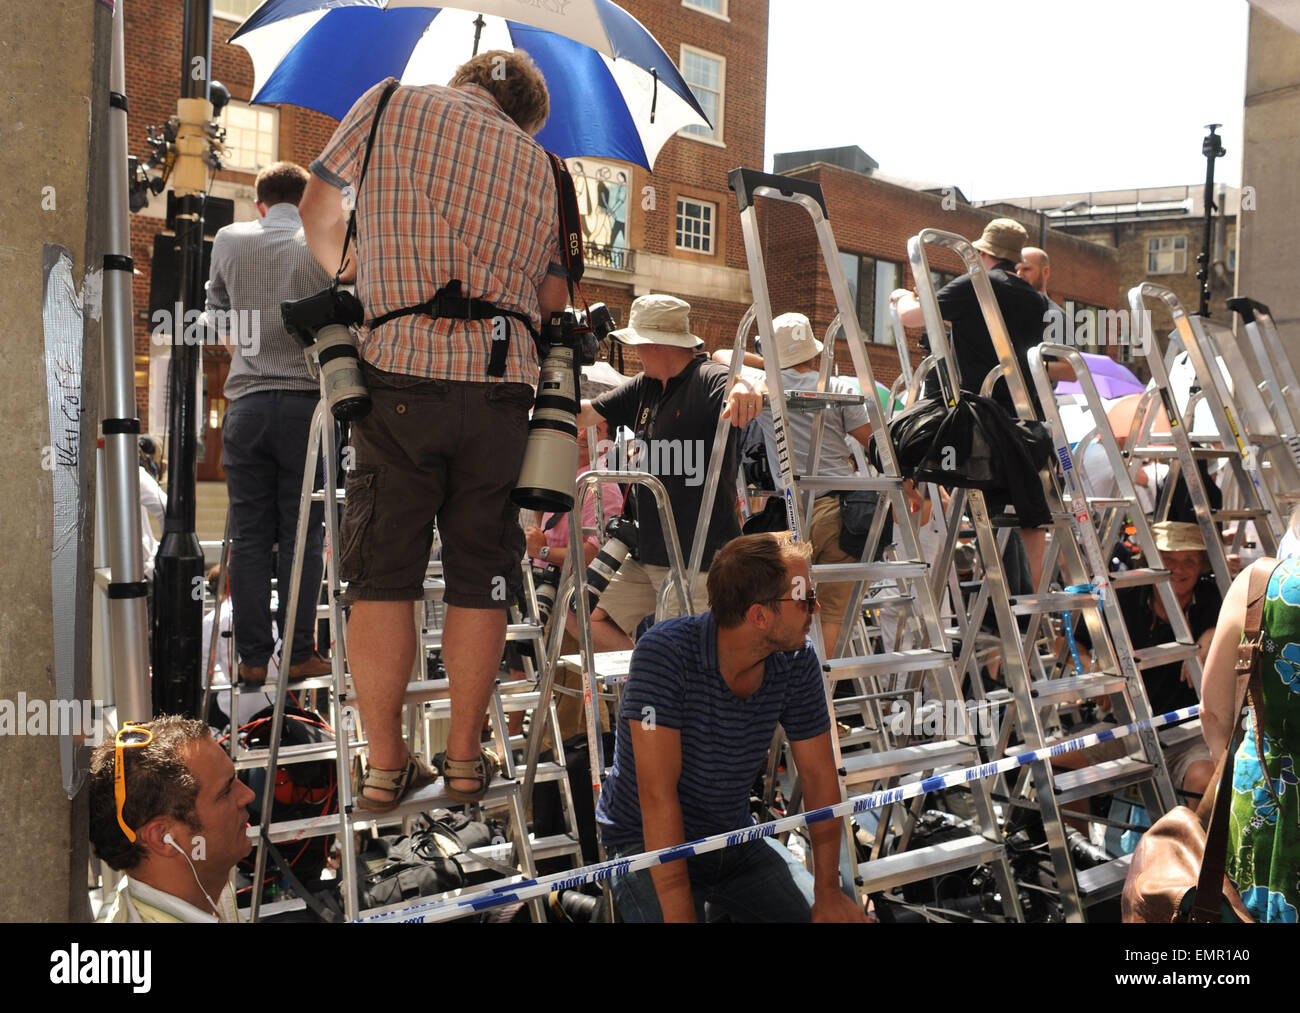 22.JULY.2013. LONDON  SPECTATORS AND PRESS GATHERED AT ST MARY'S HOSPITAL WHERE IT WAS ANNOUNCED THAT KATE MIDDLETON - Stock Image